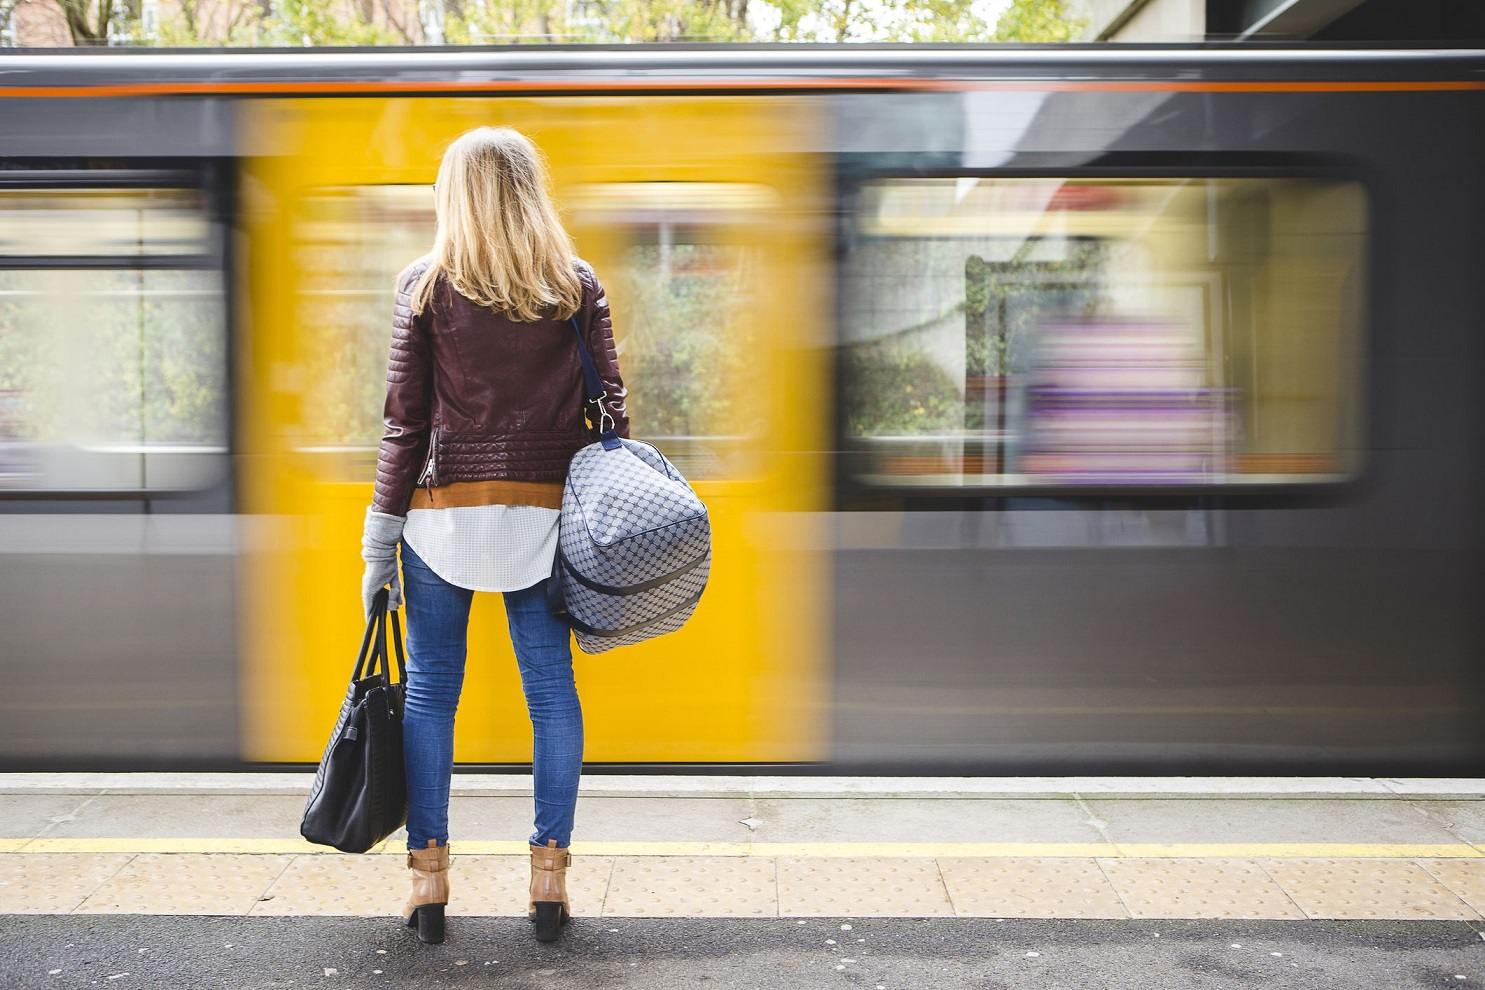 The future of British rail according to the women who move the country forward